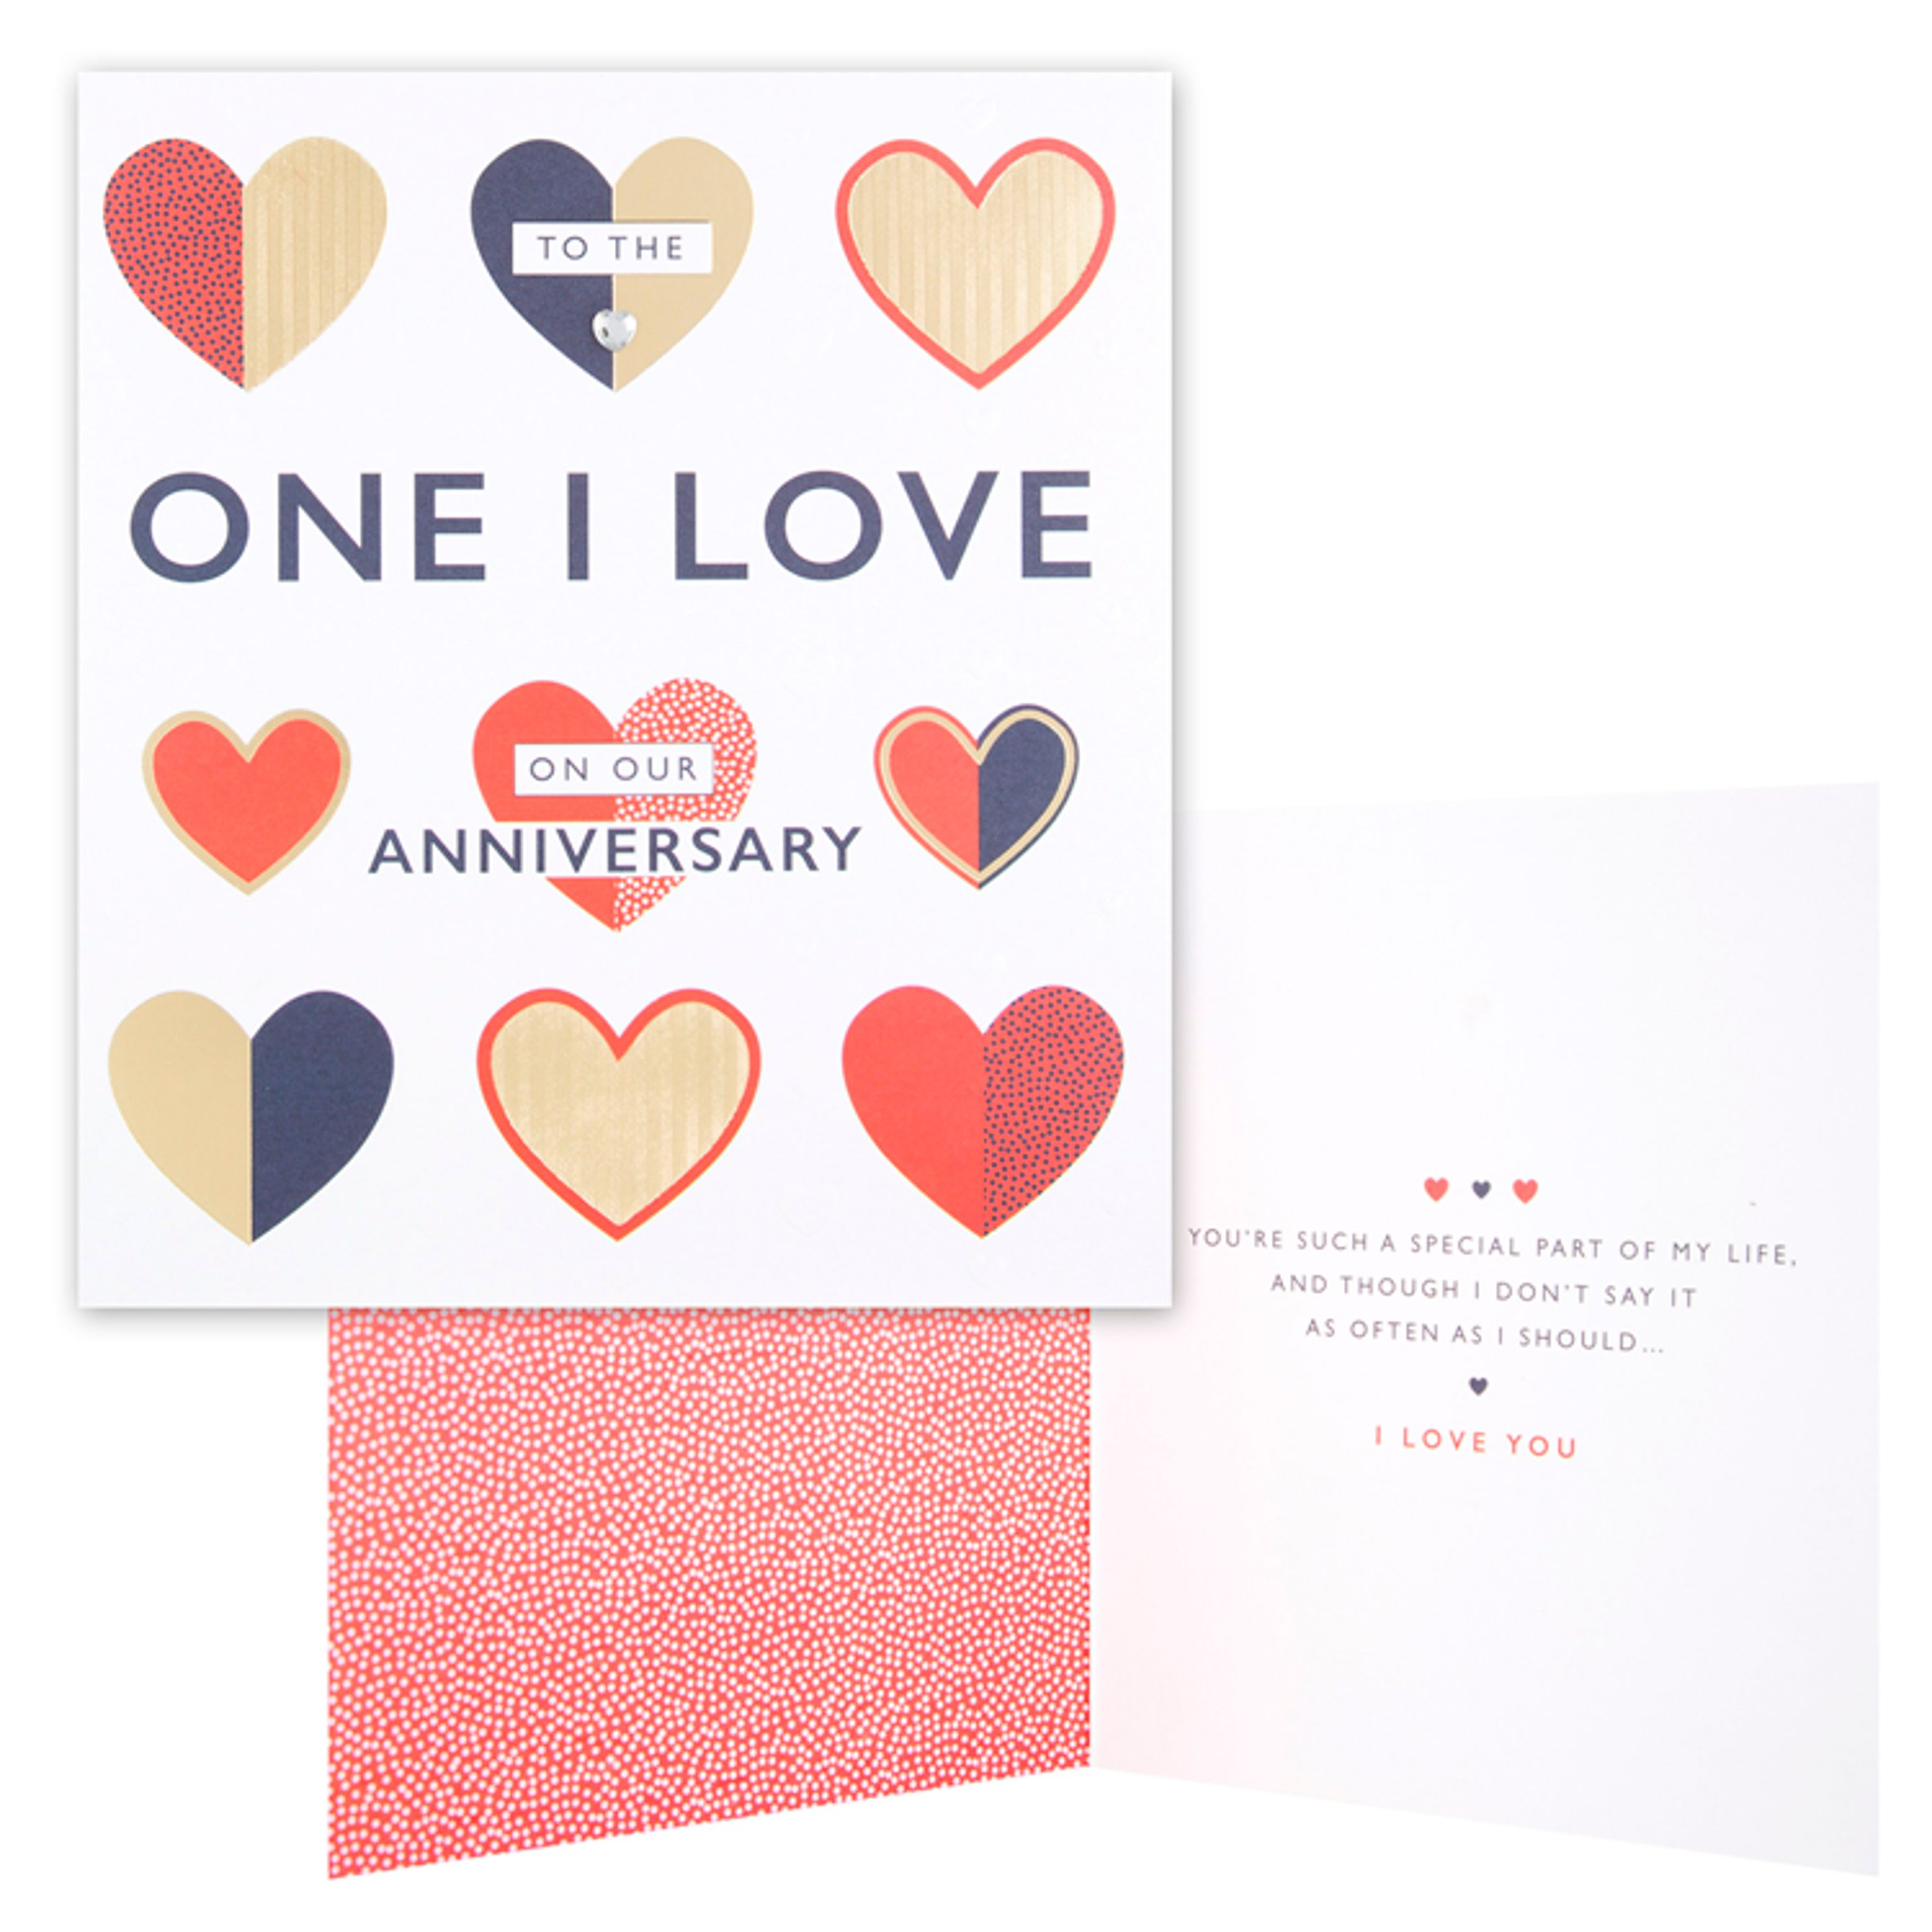 To The One I Love Anniversary Card